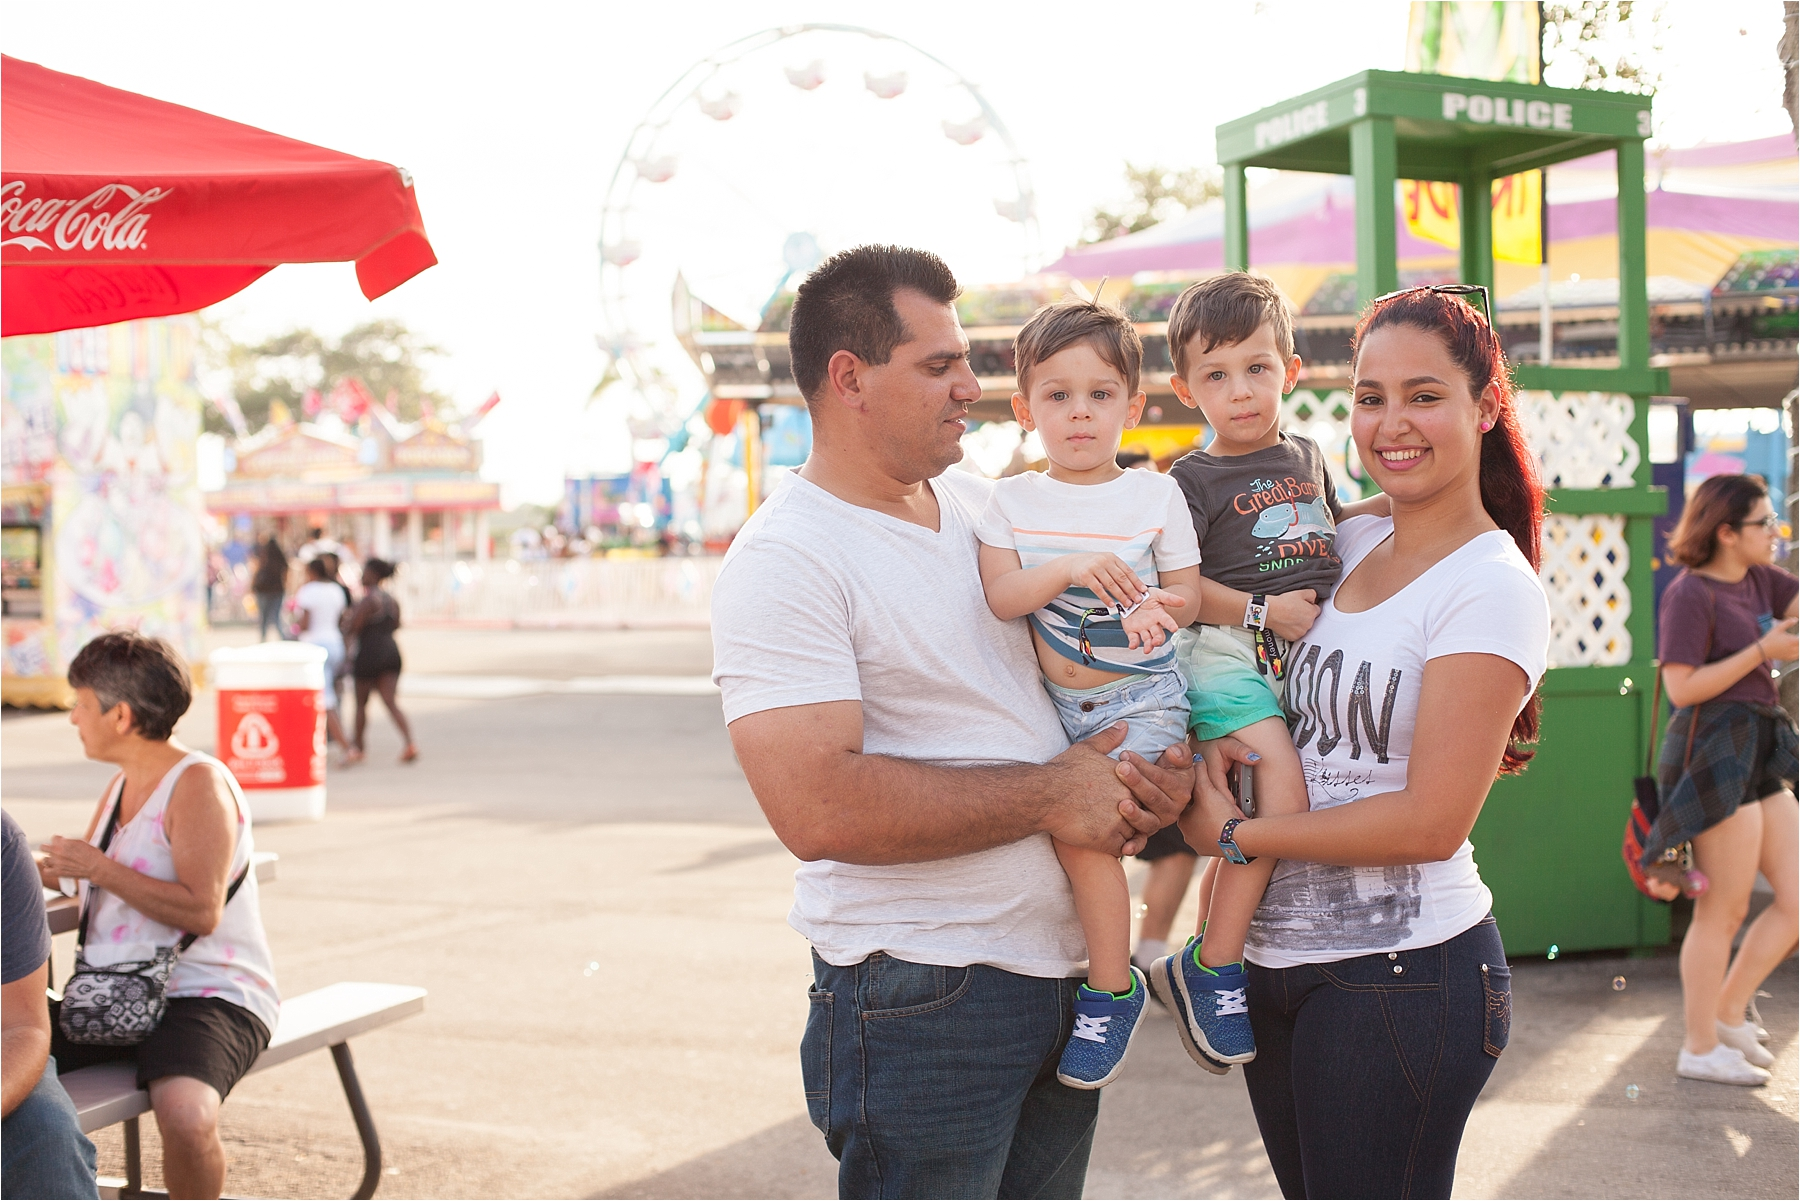 the vigoas at the fair